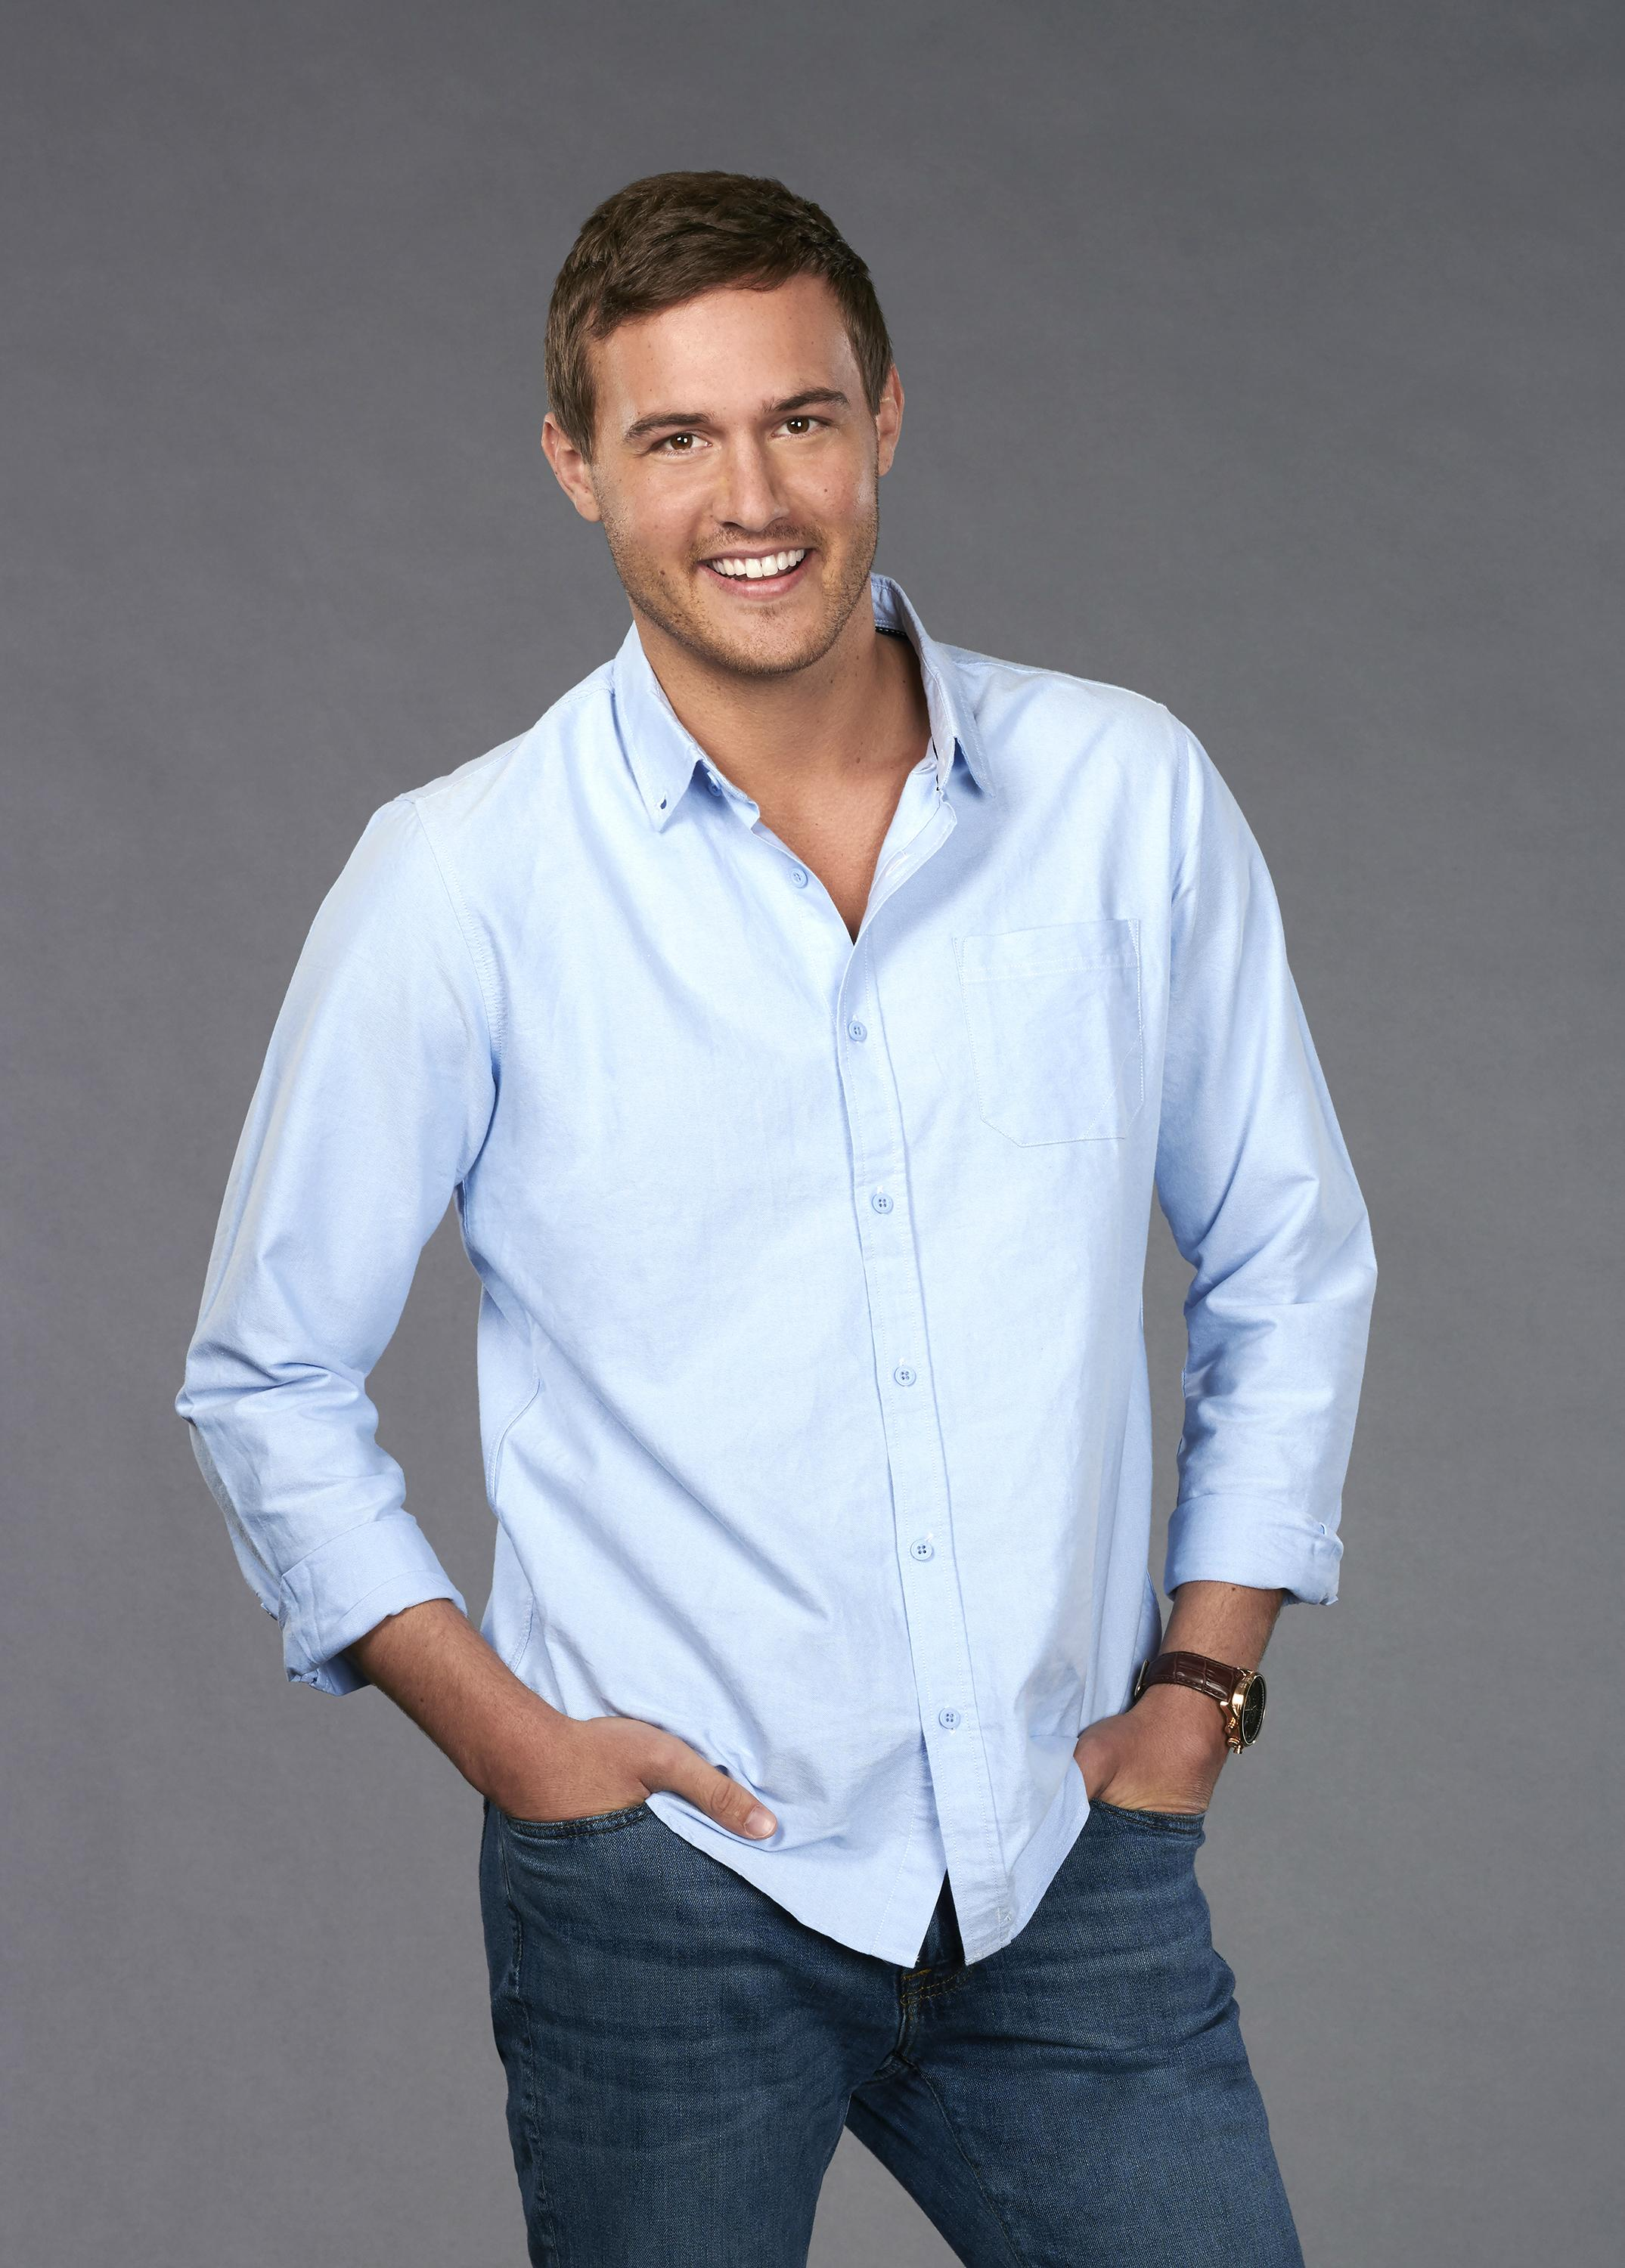 is-pete-the-next-bachelor-1564585577835.jpg